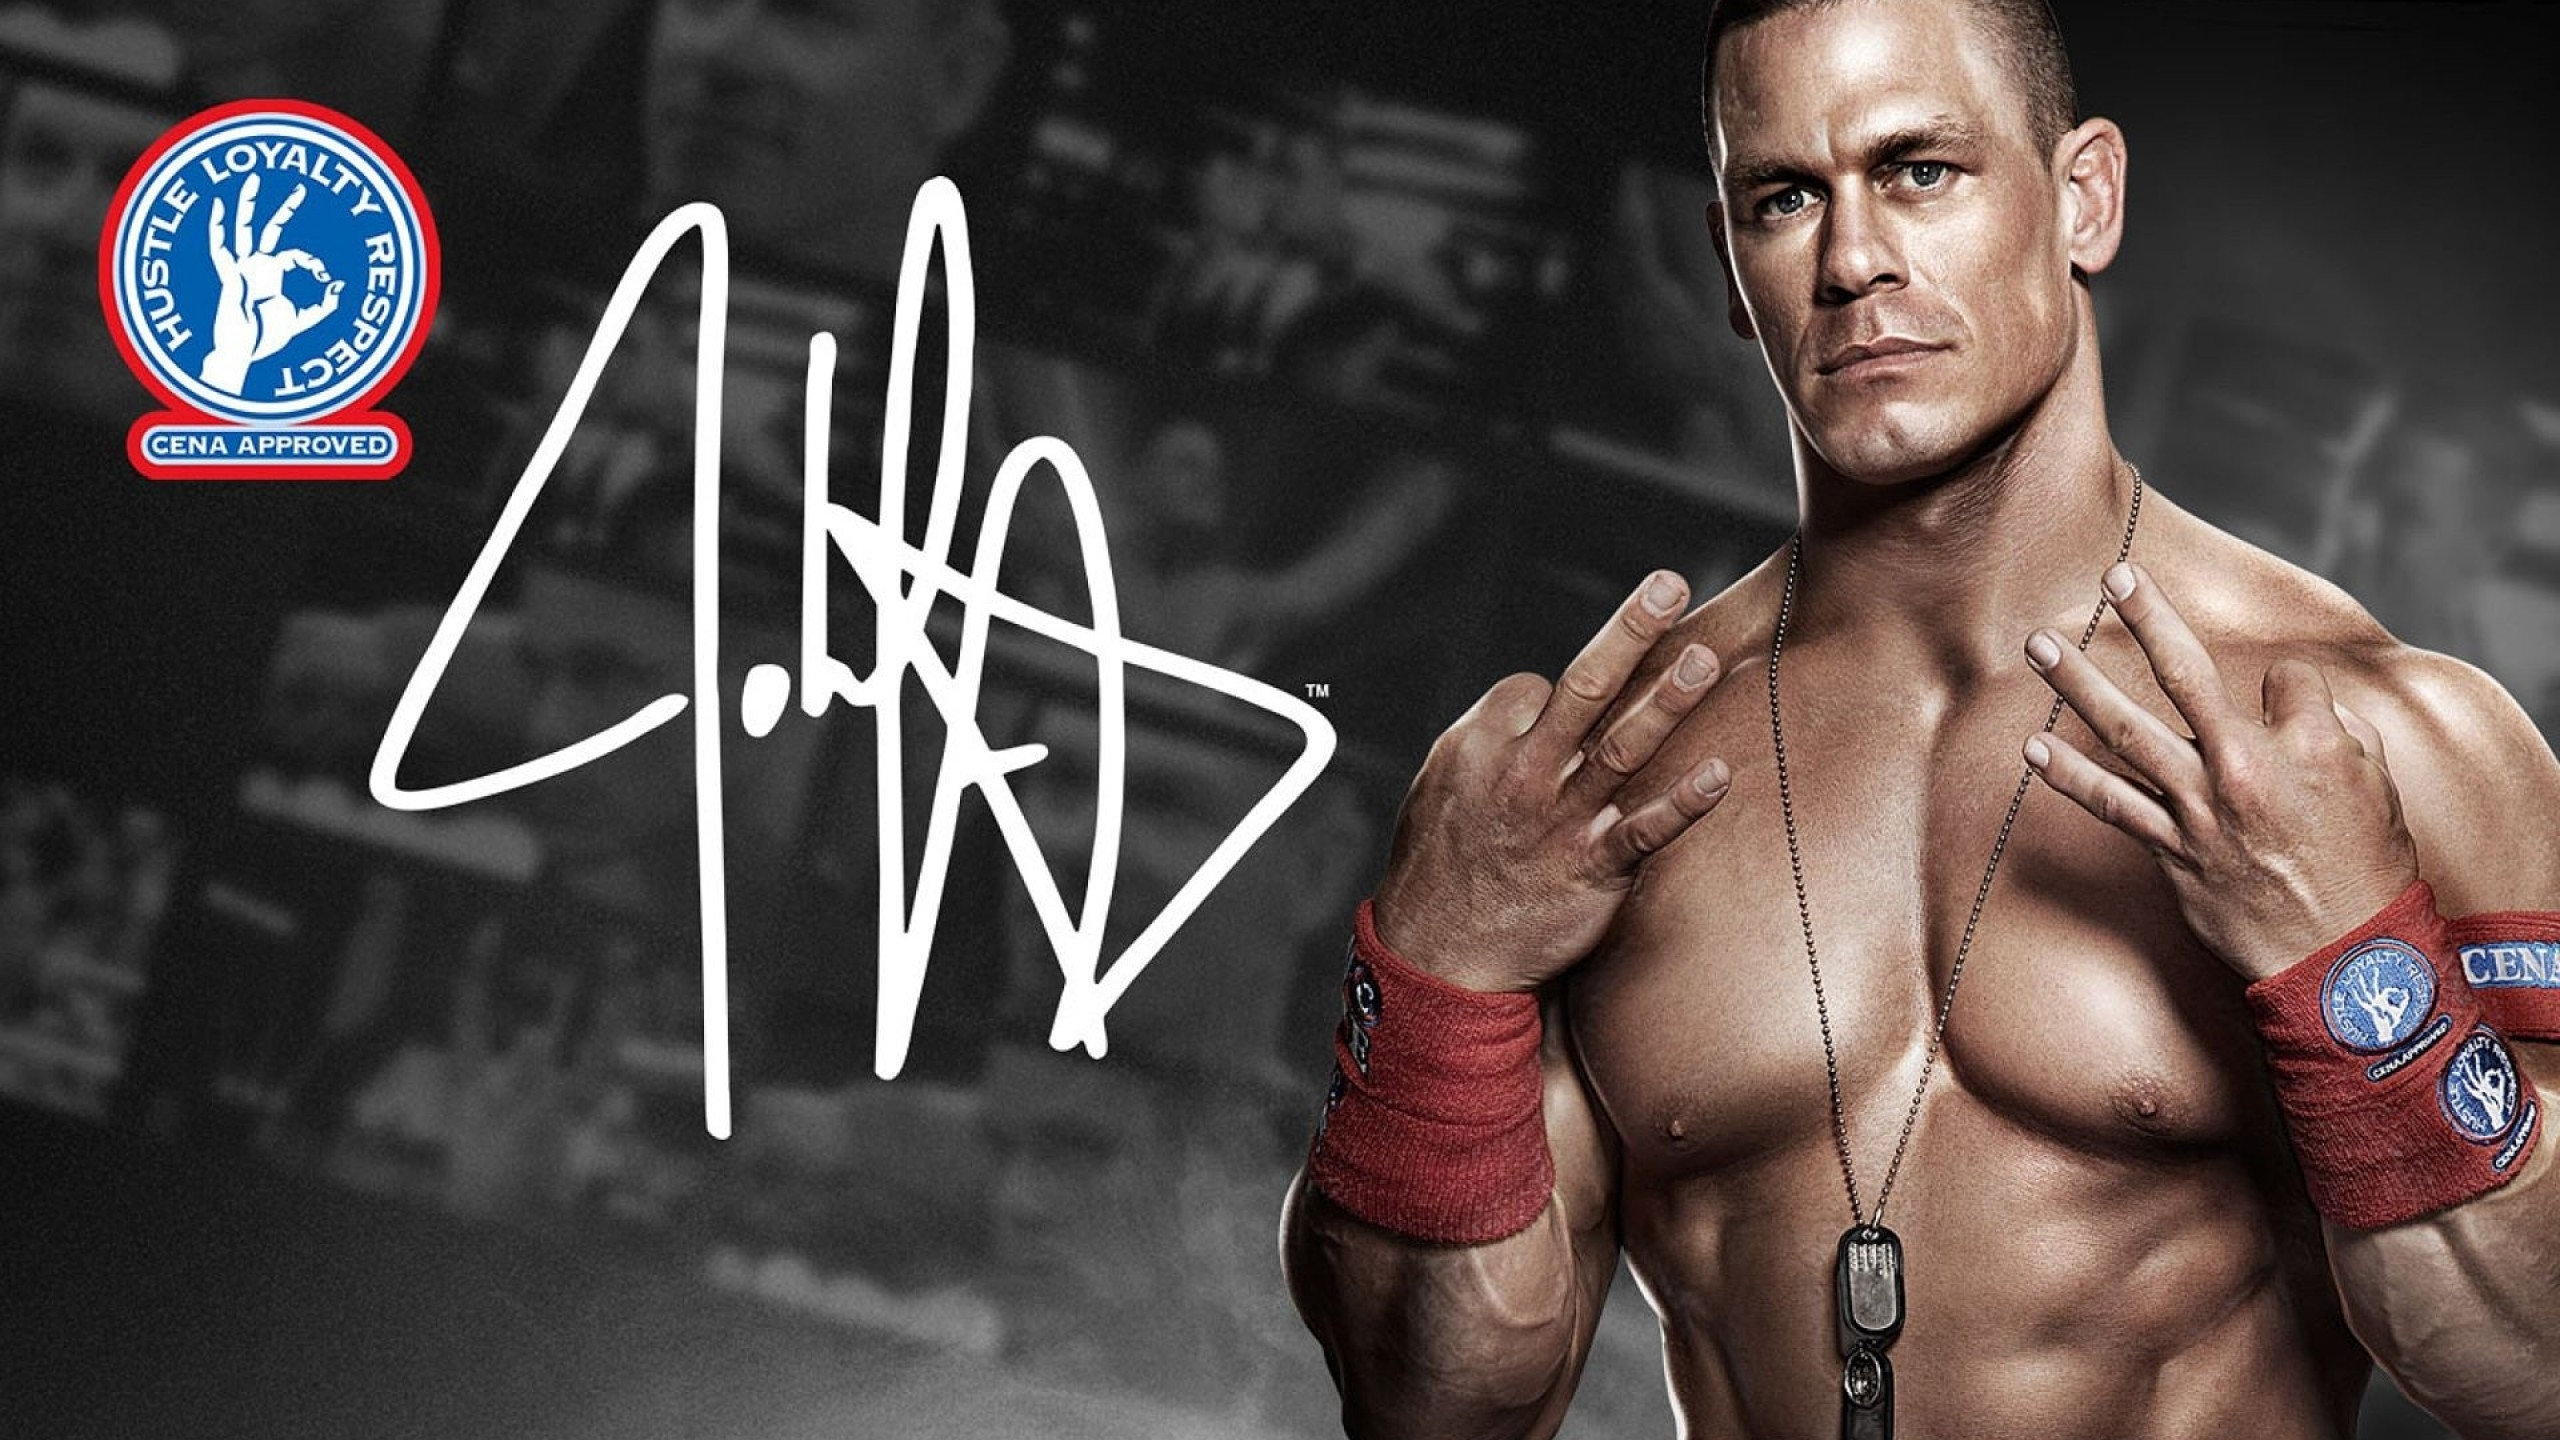 23 john cena hd wallpapers | background images - wallpaper abyss